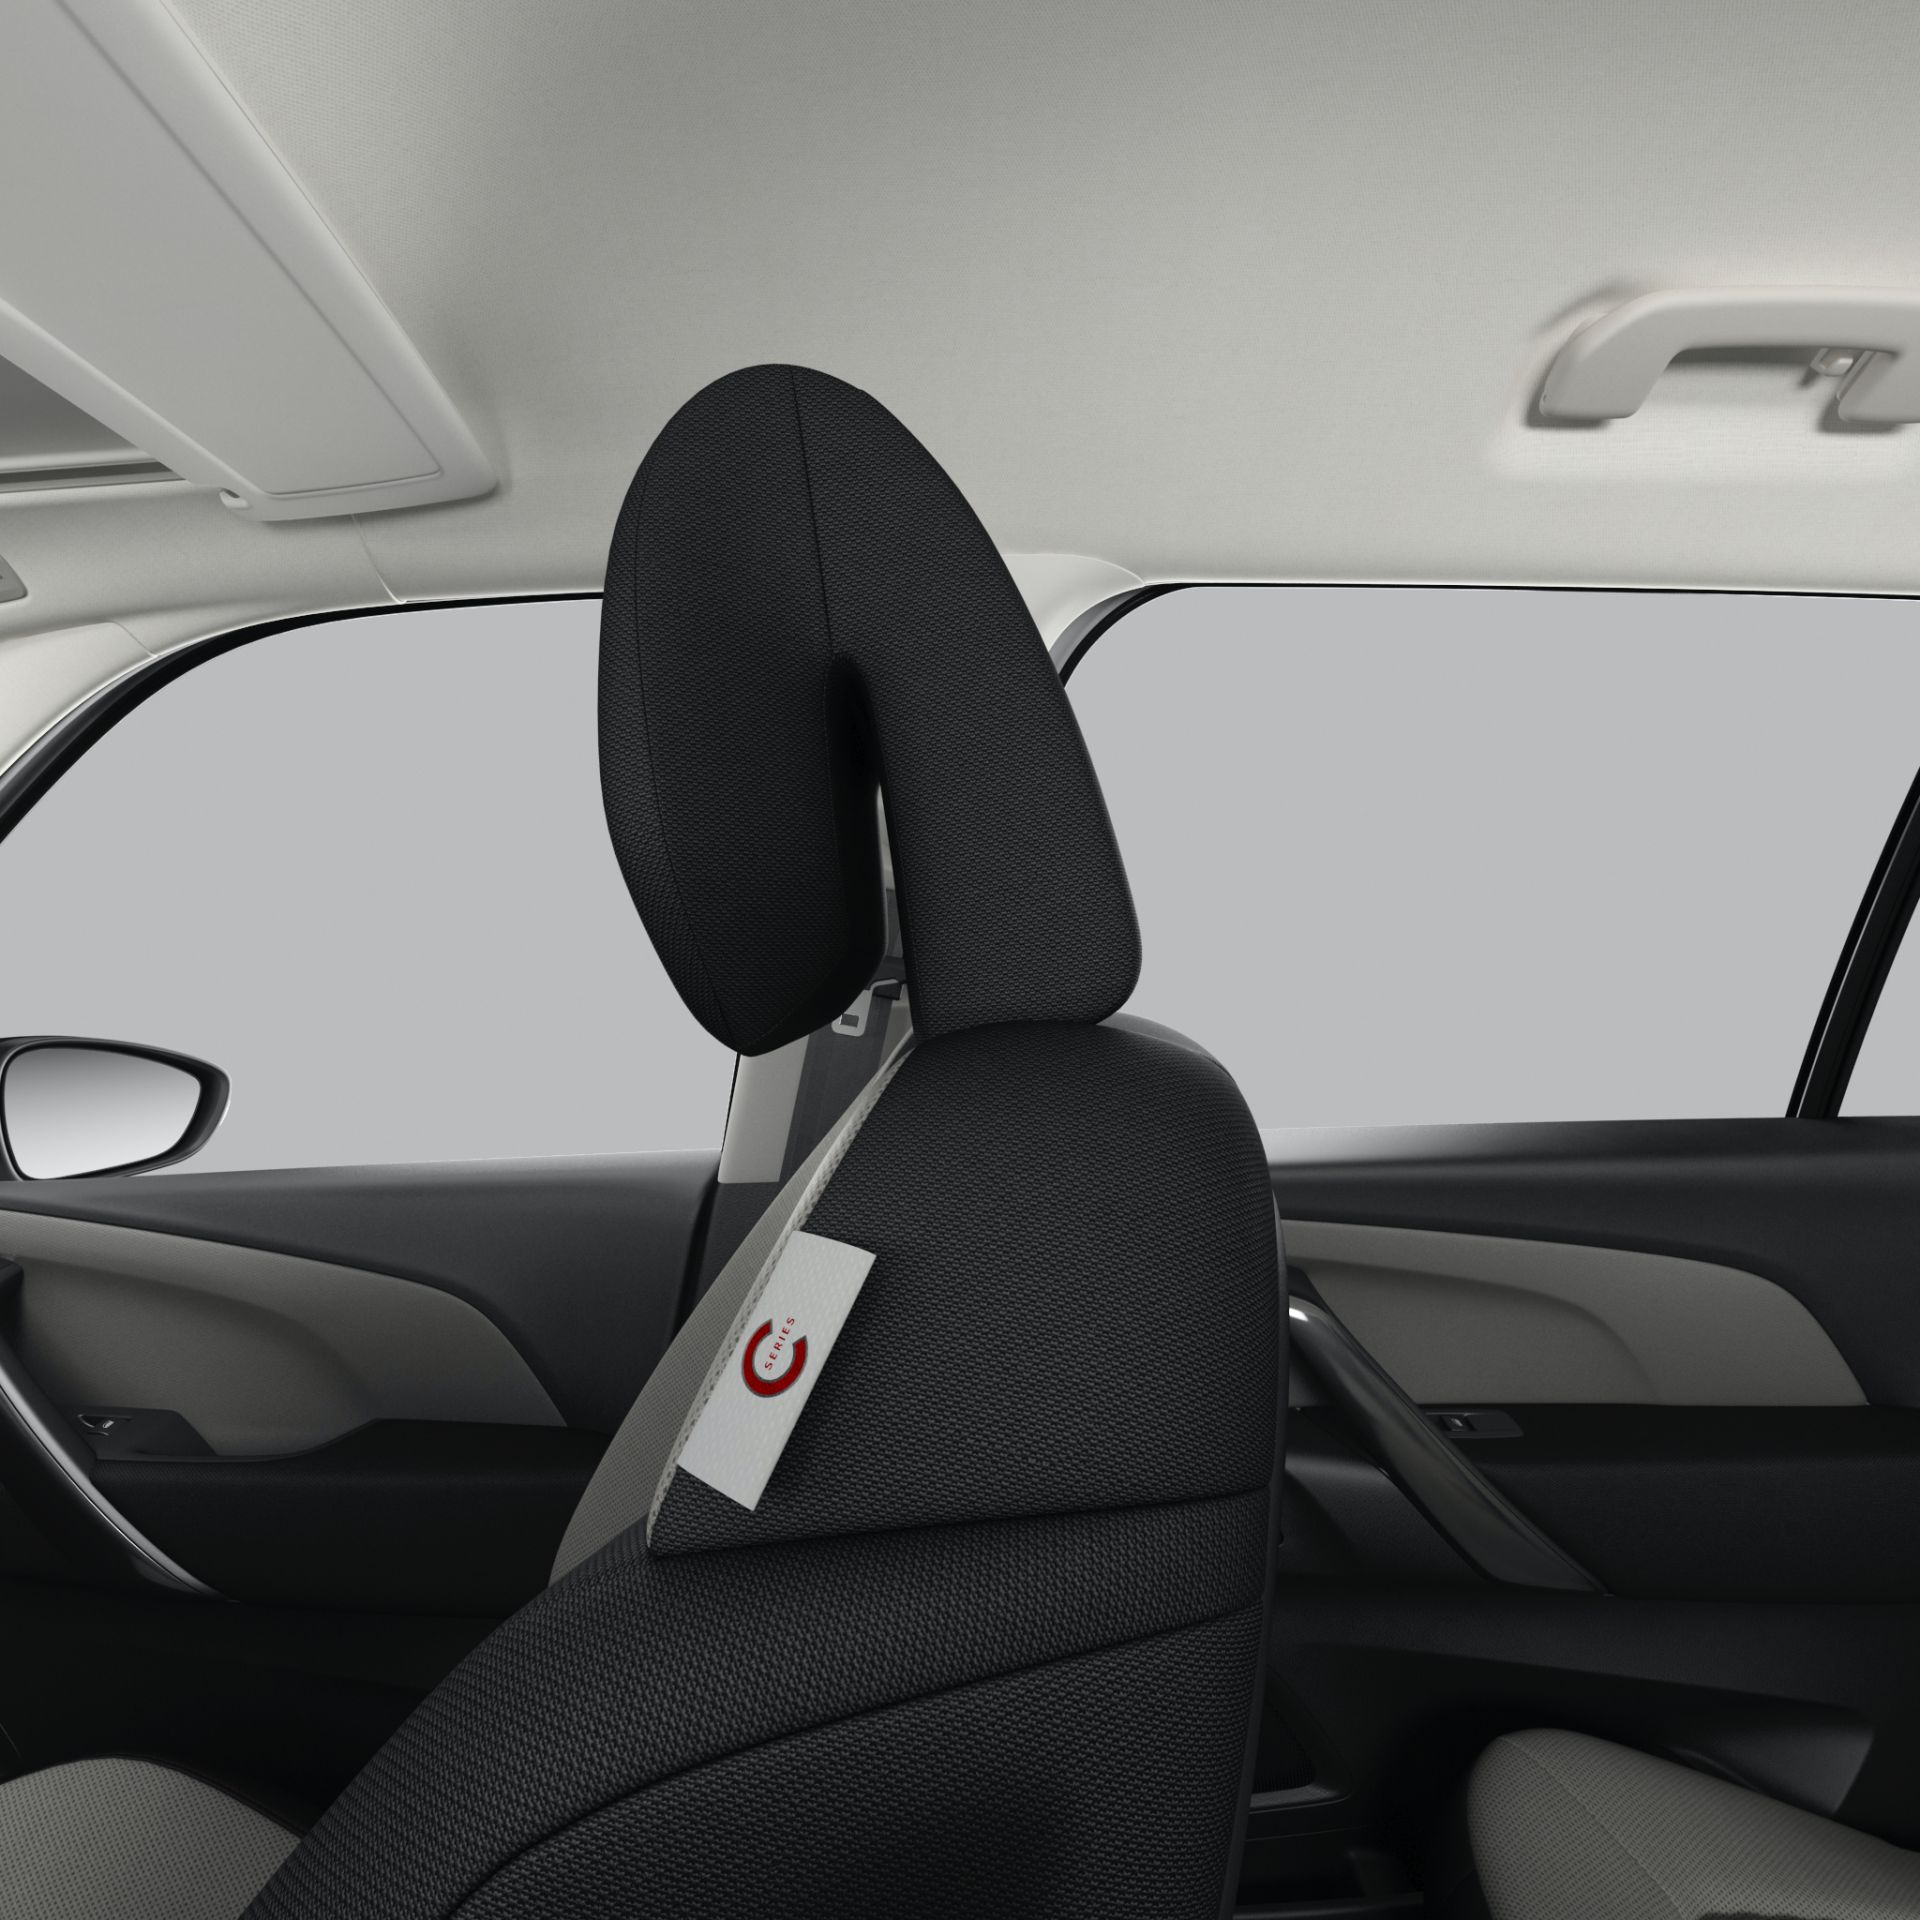 2021-Citroen-Grand-C4-SpaceTourer-C-Series-3